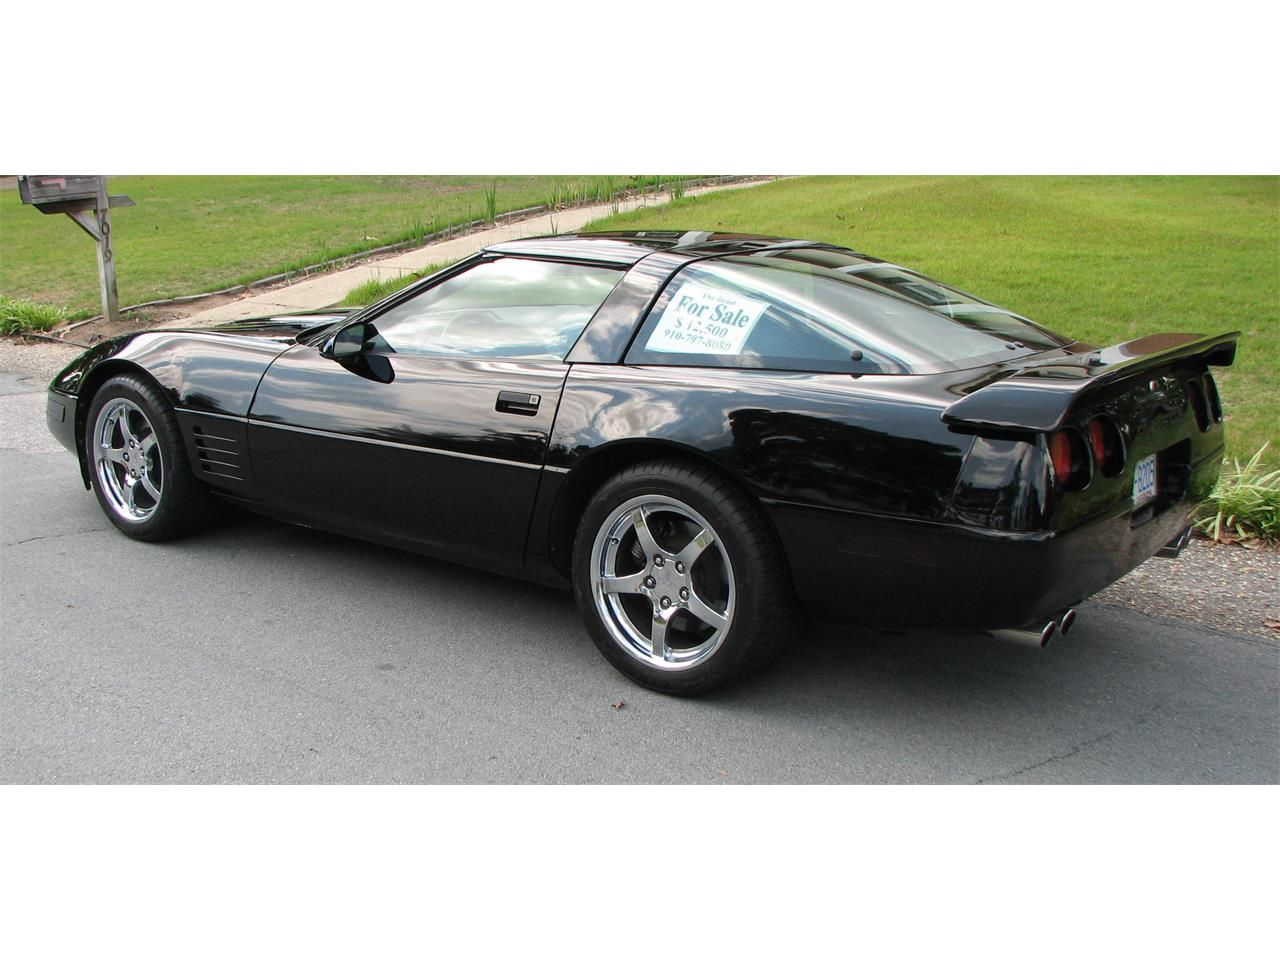 Large Picture of 1991 Corvette - $10,750.00 Offered by a Private Seller - L16X